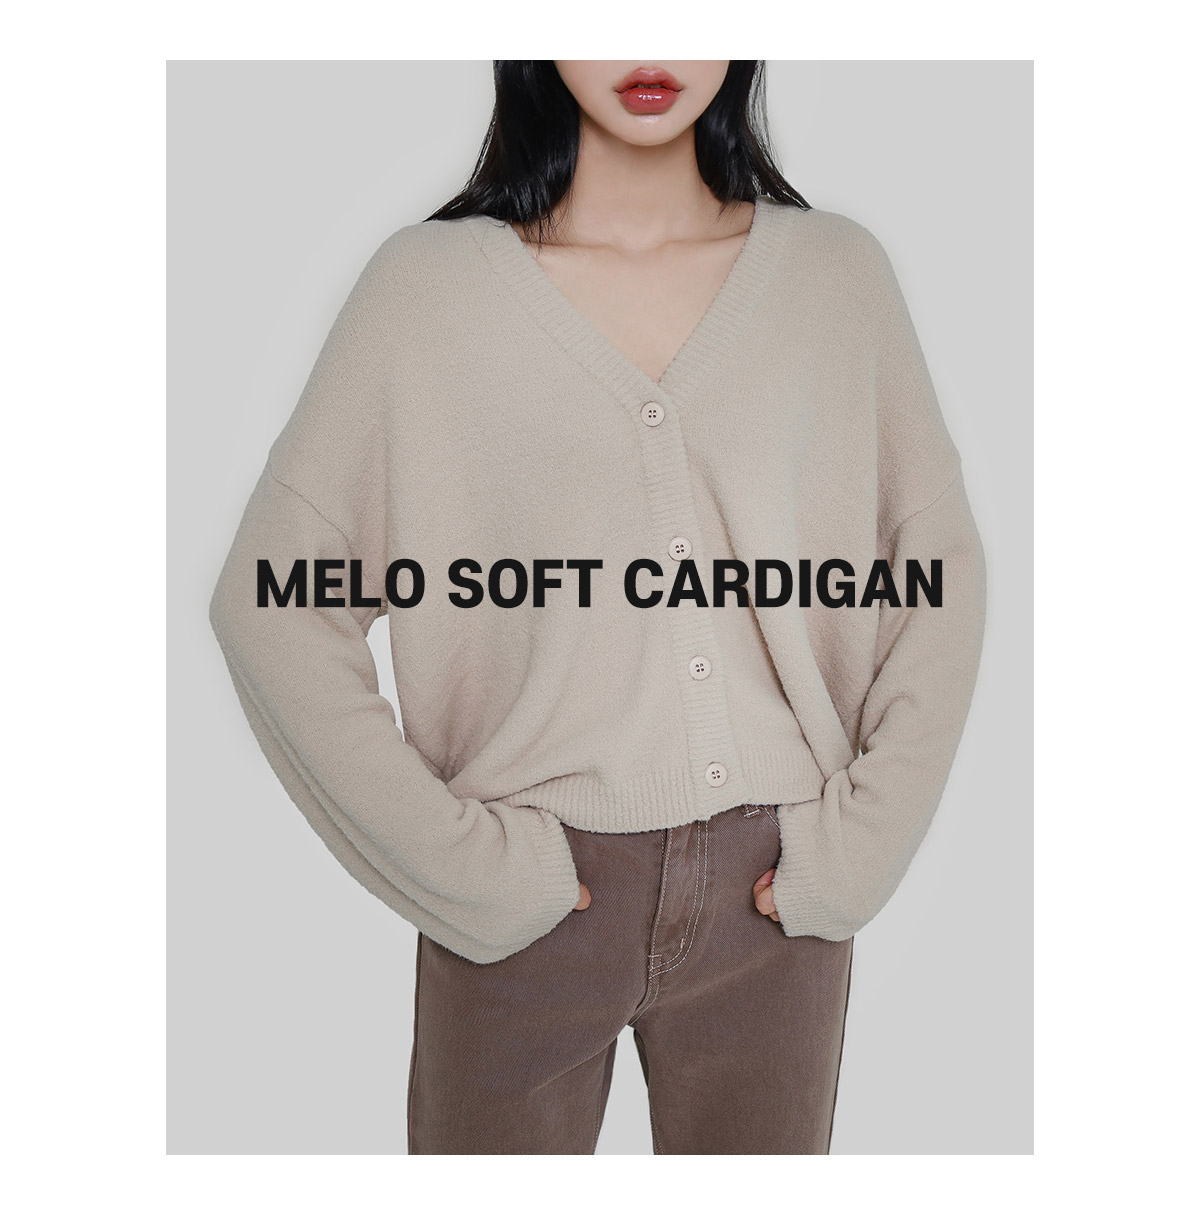 Melo soft cardigan